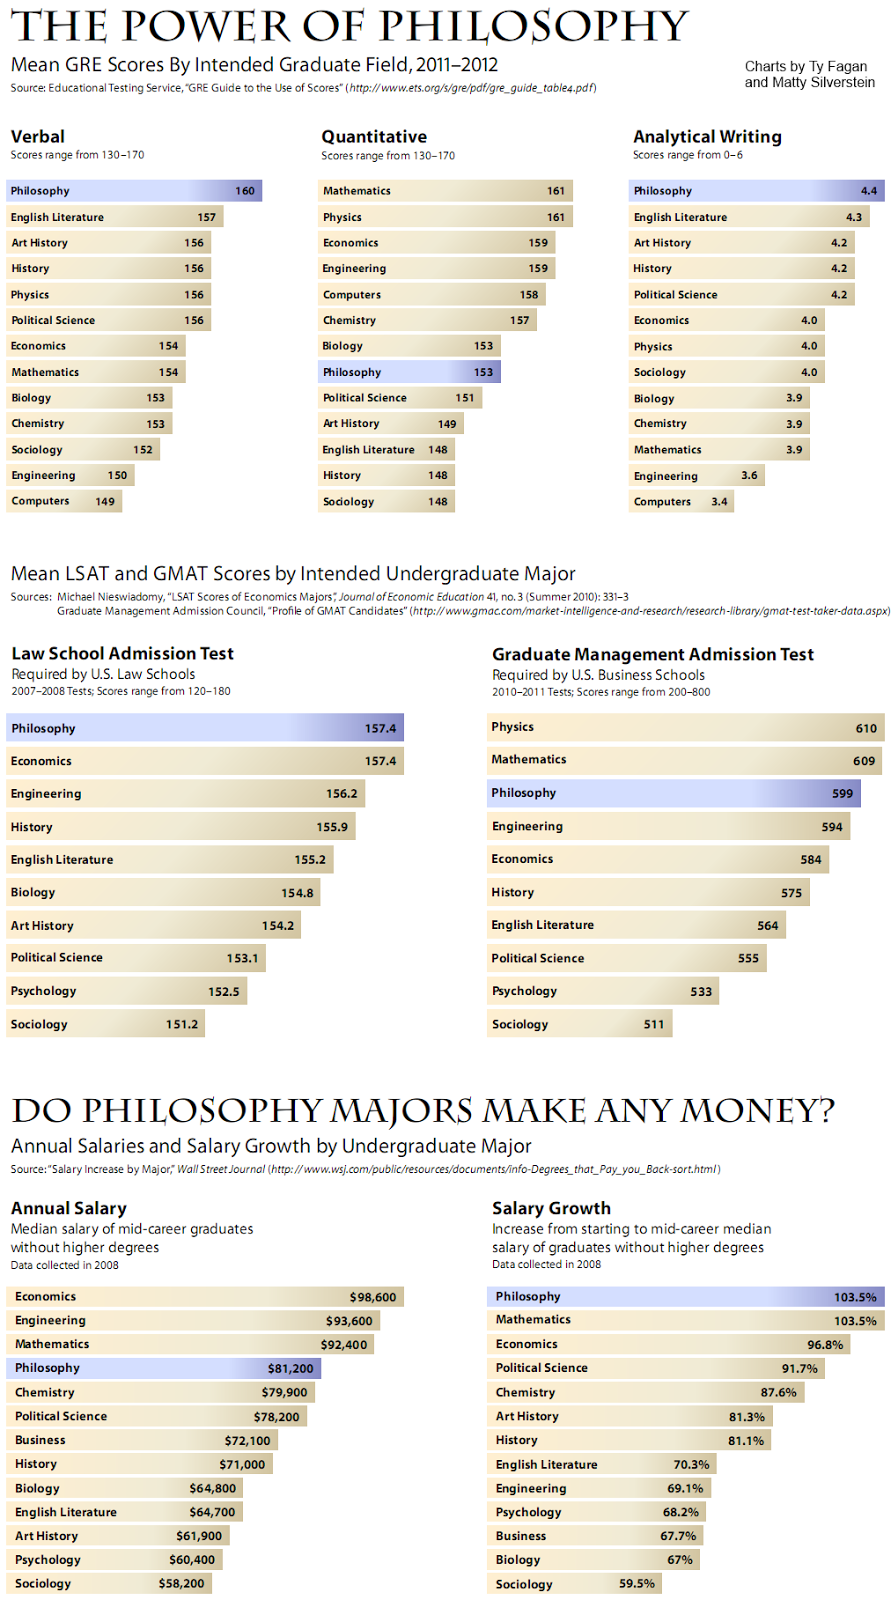 Charts show philosophy majors TEST SCORES AND SALARIES